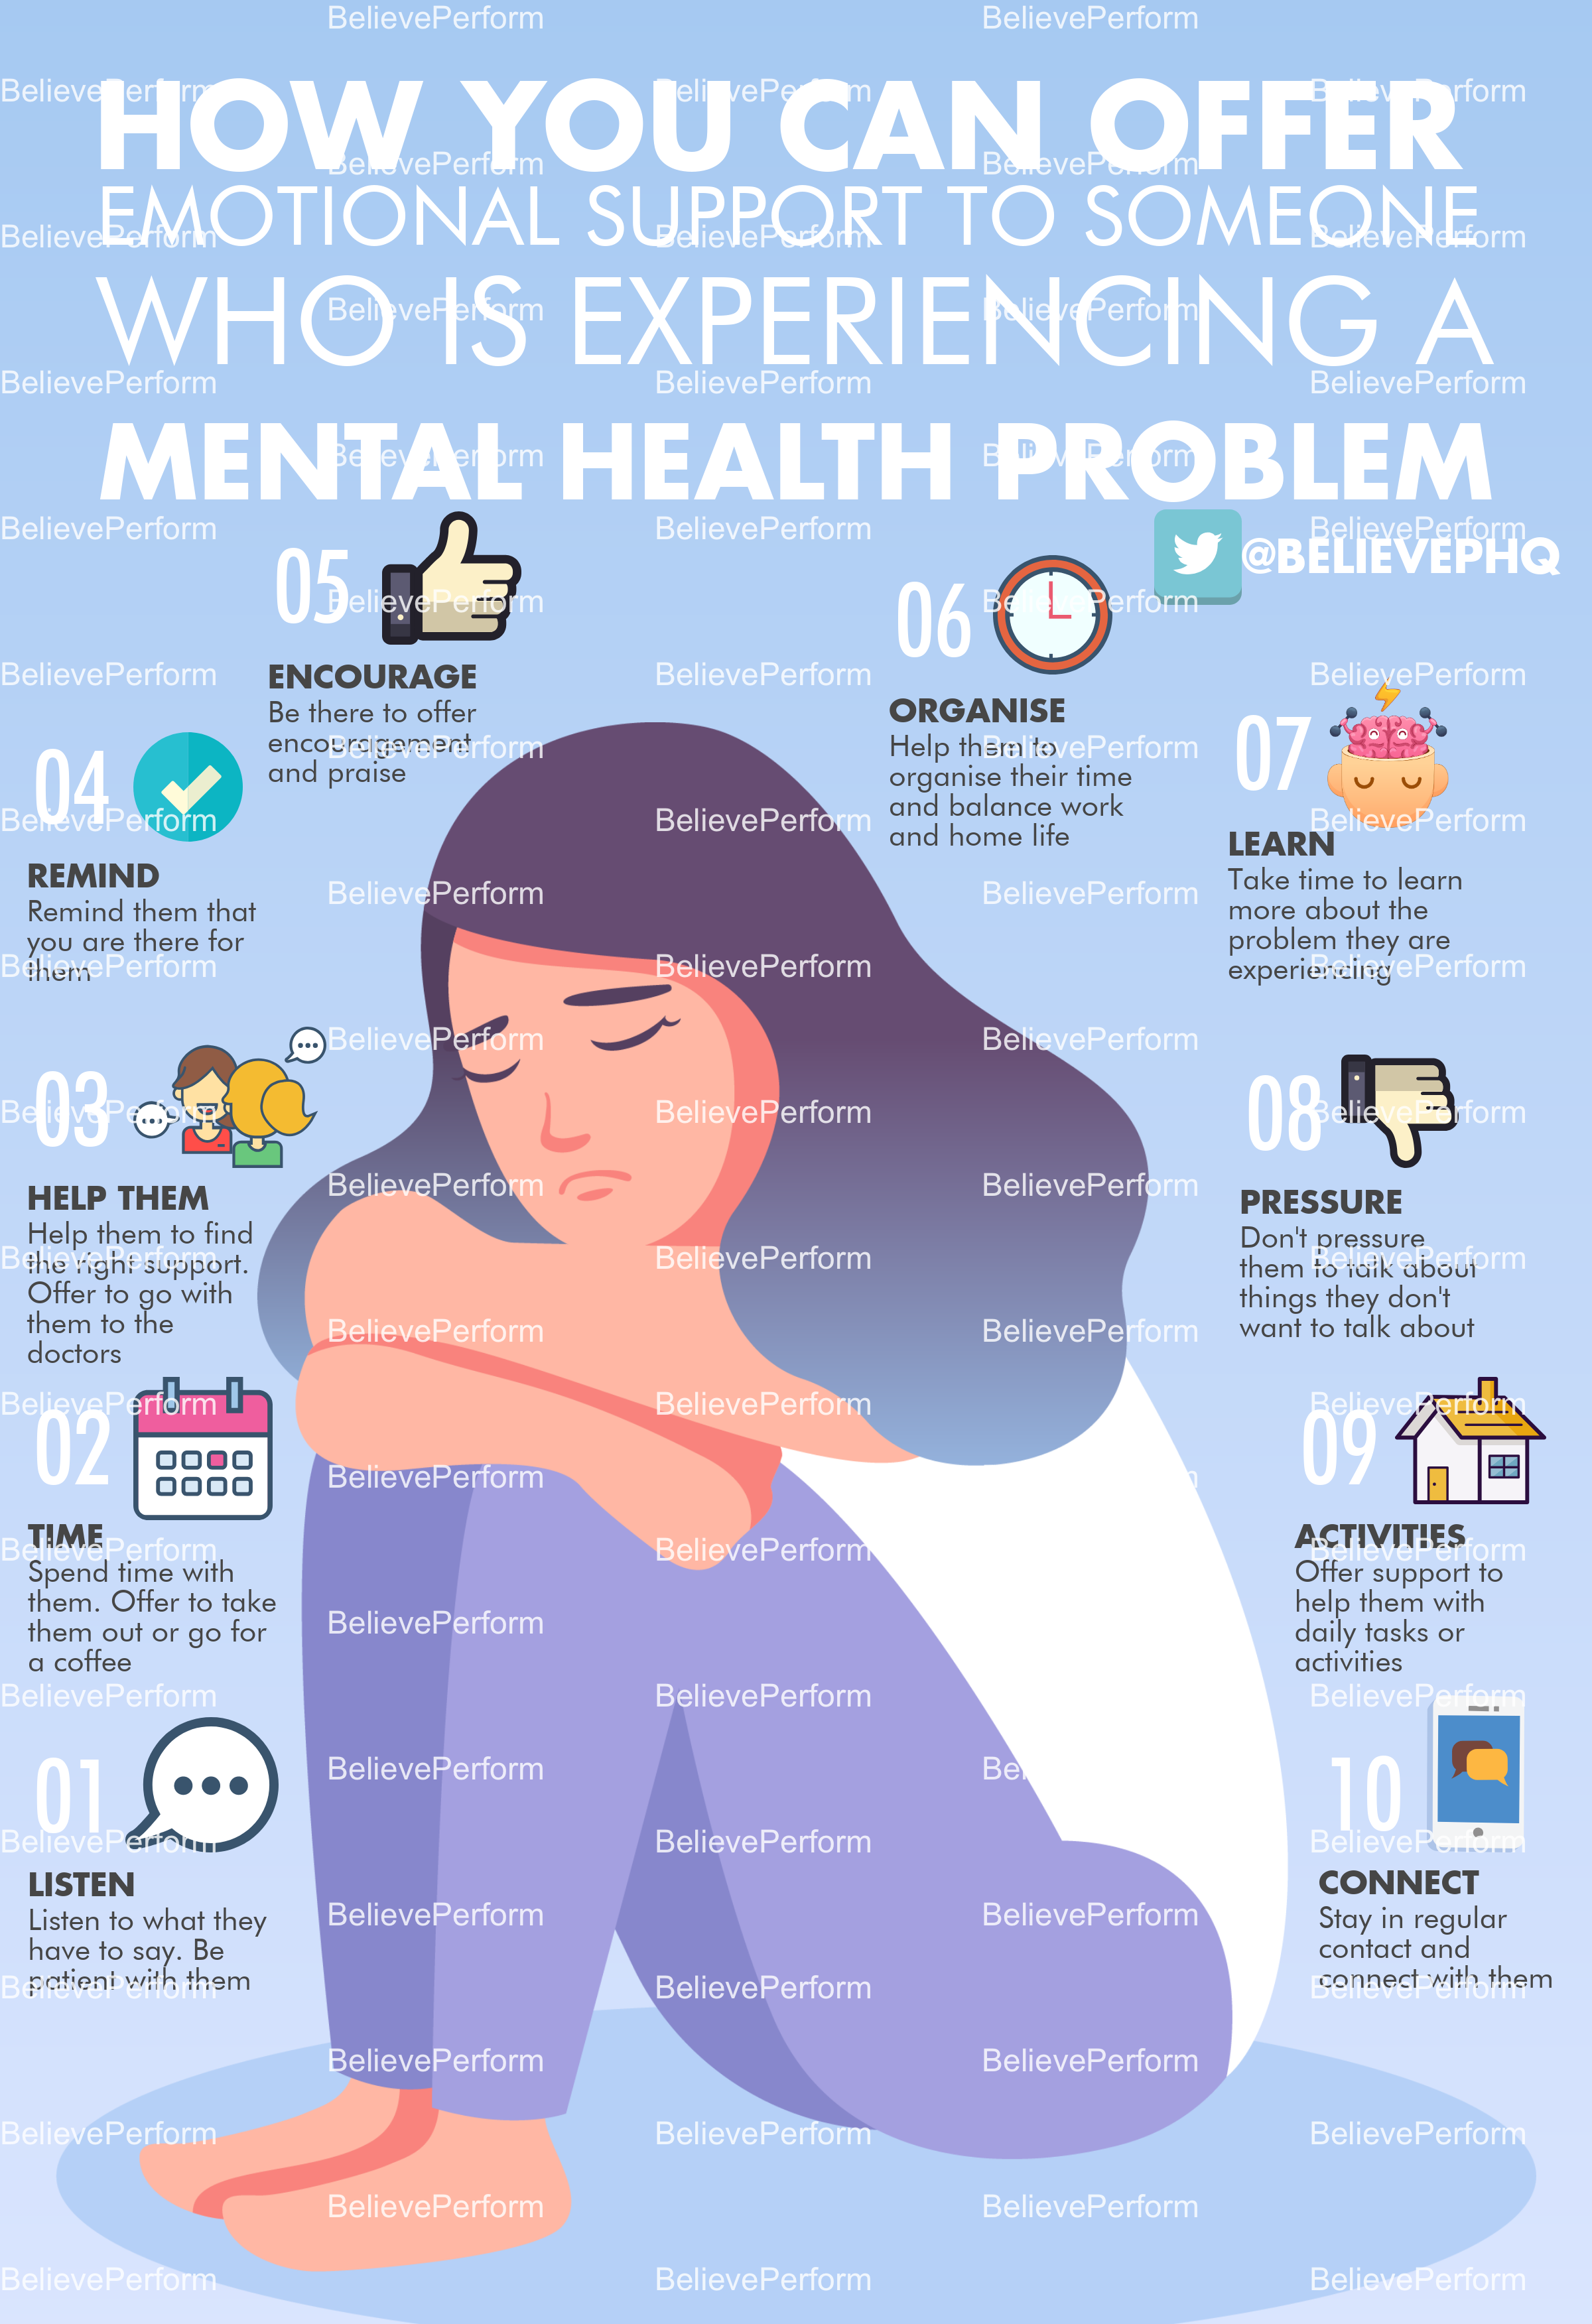 How you can offer emotional support to someone who is experiencing a mental health problem